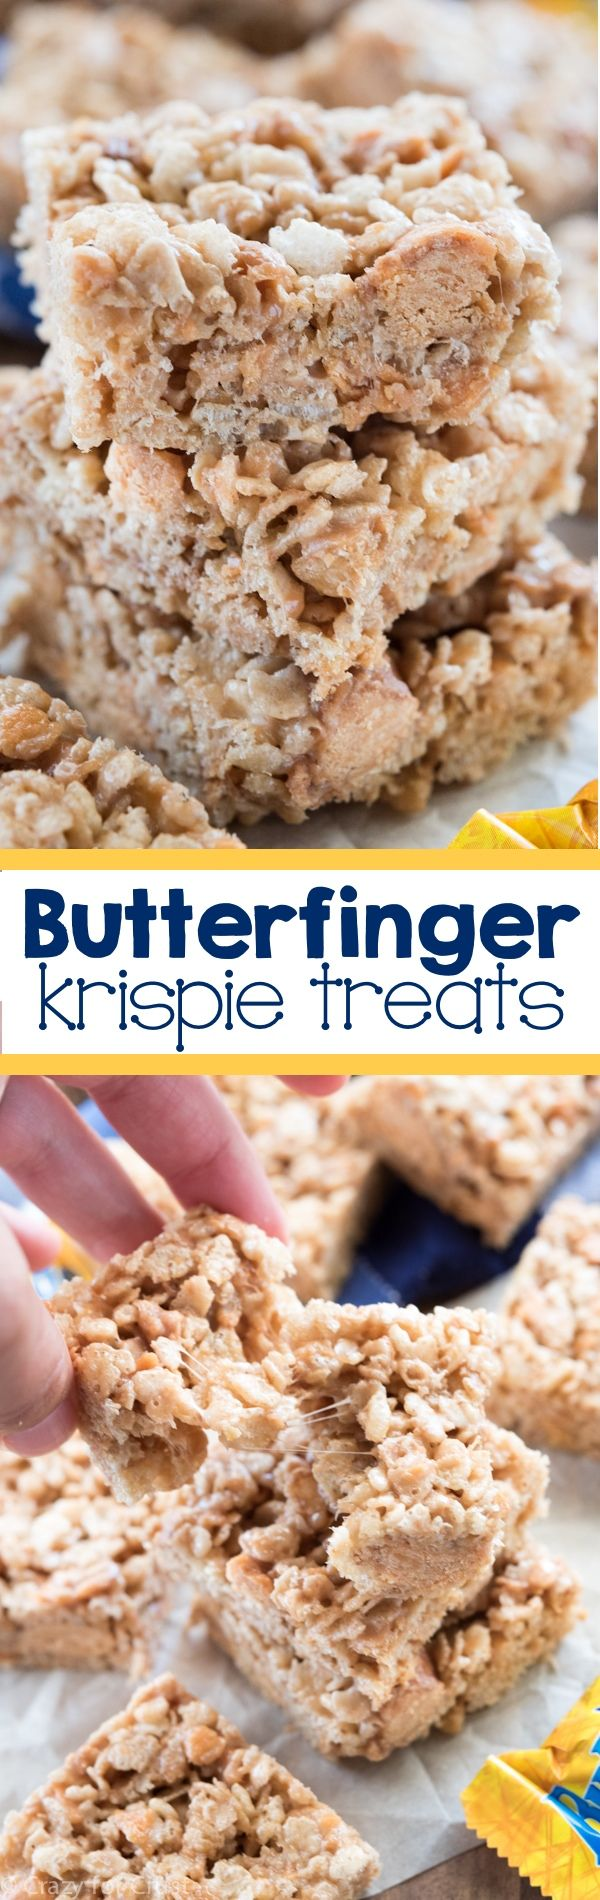 The BEST recipe: EASY Butterfinger Krispie Treats! Make them in less than 10 minutes!